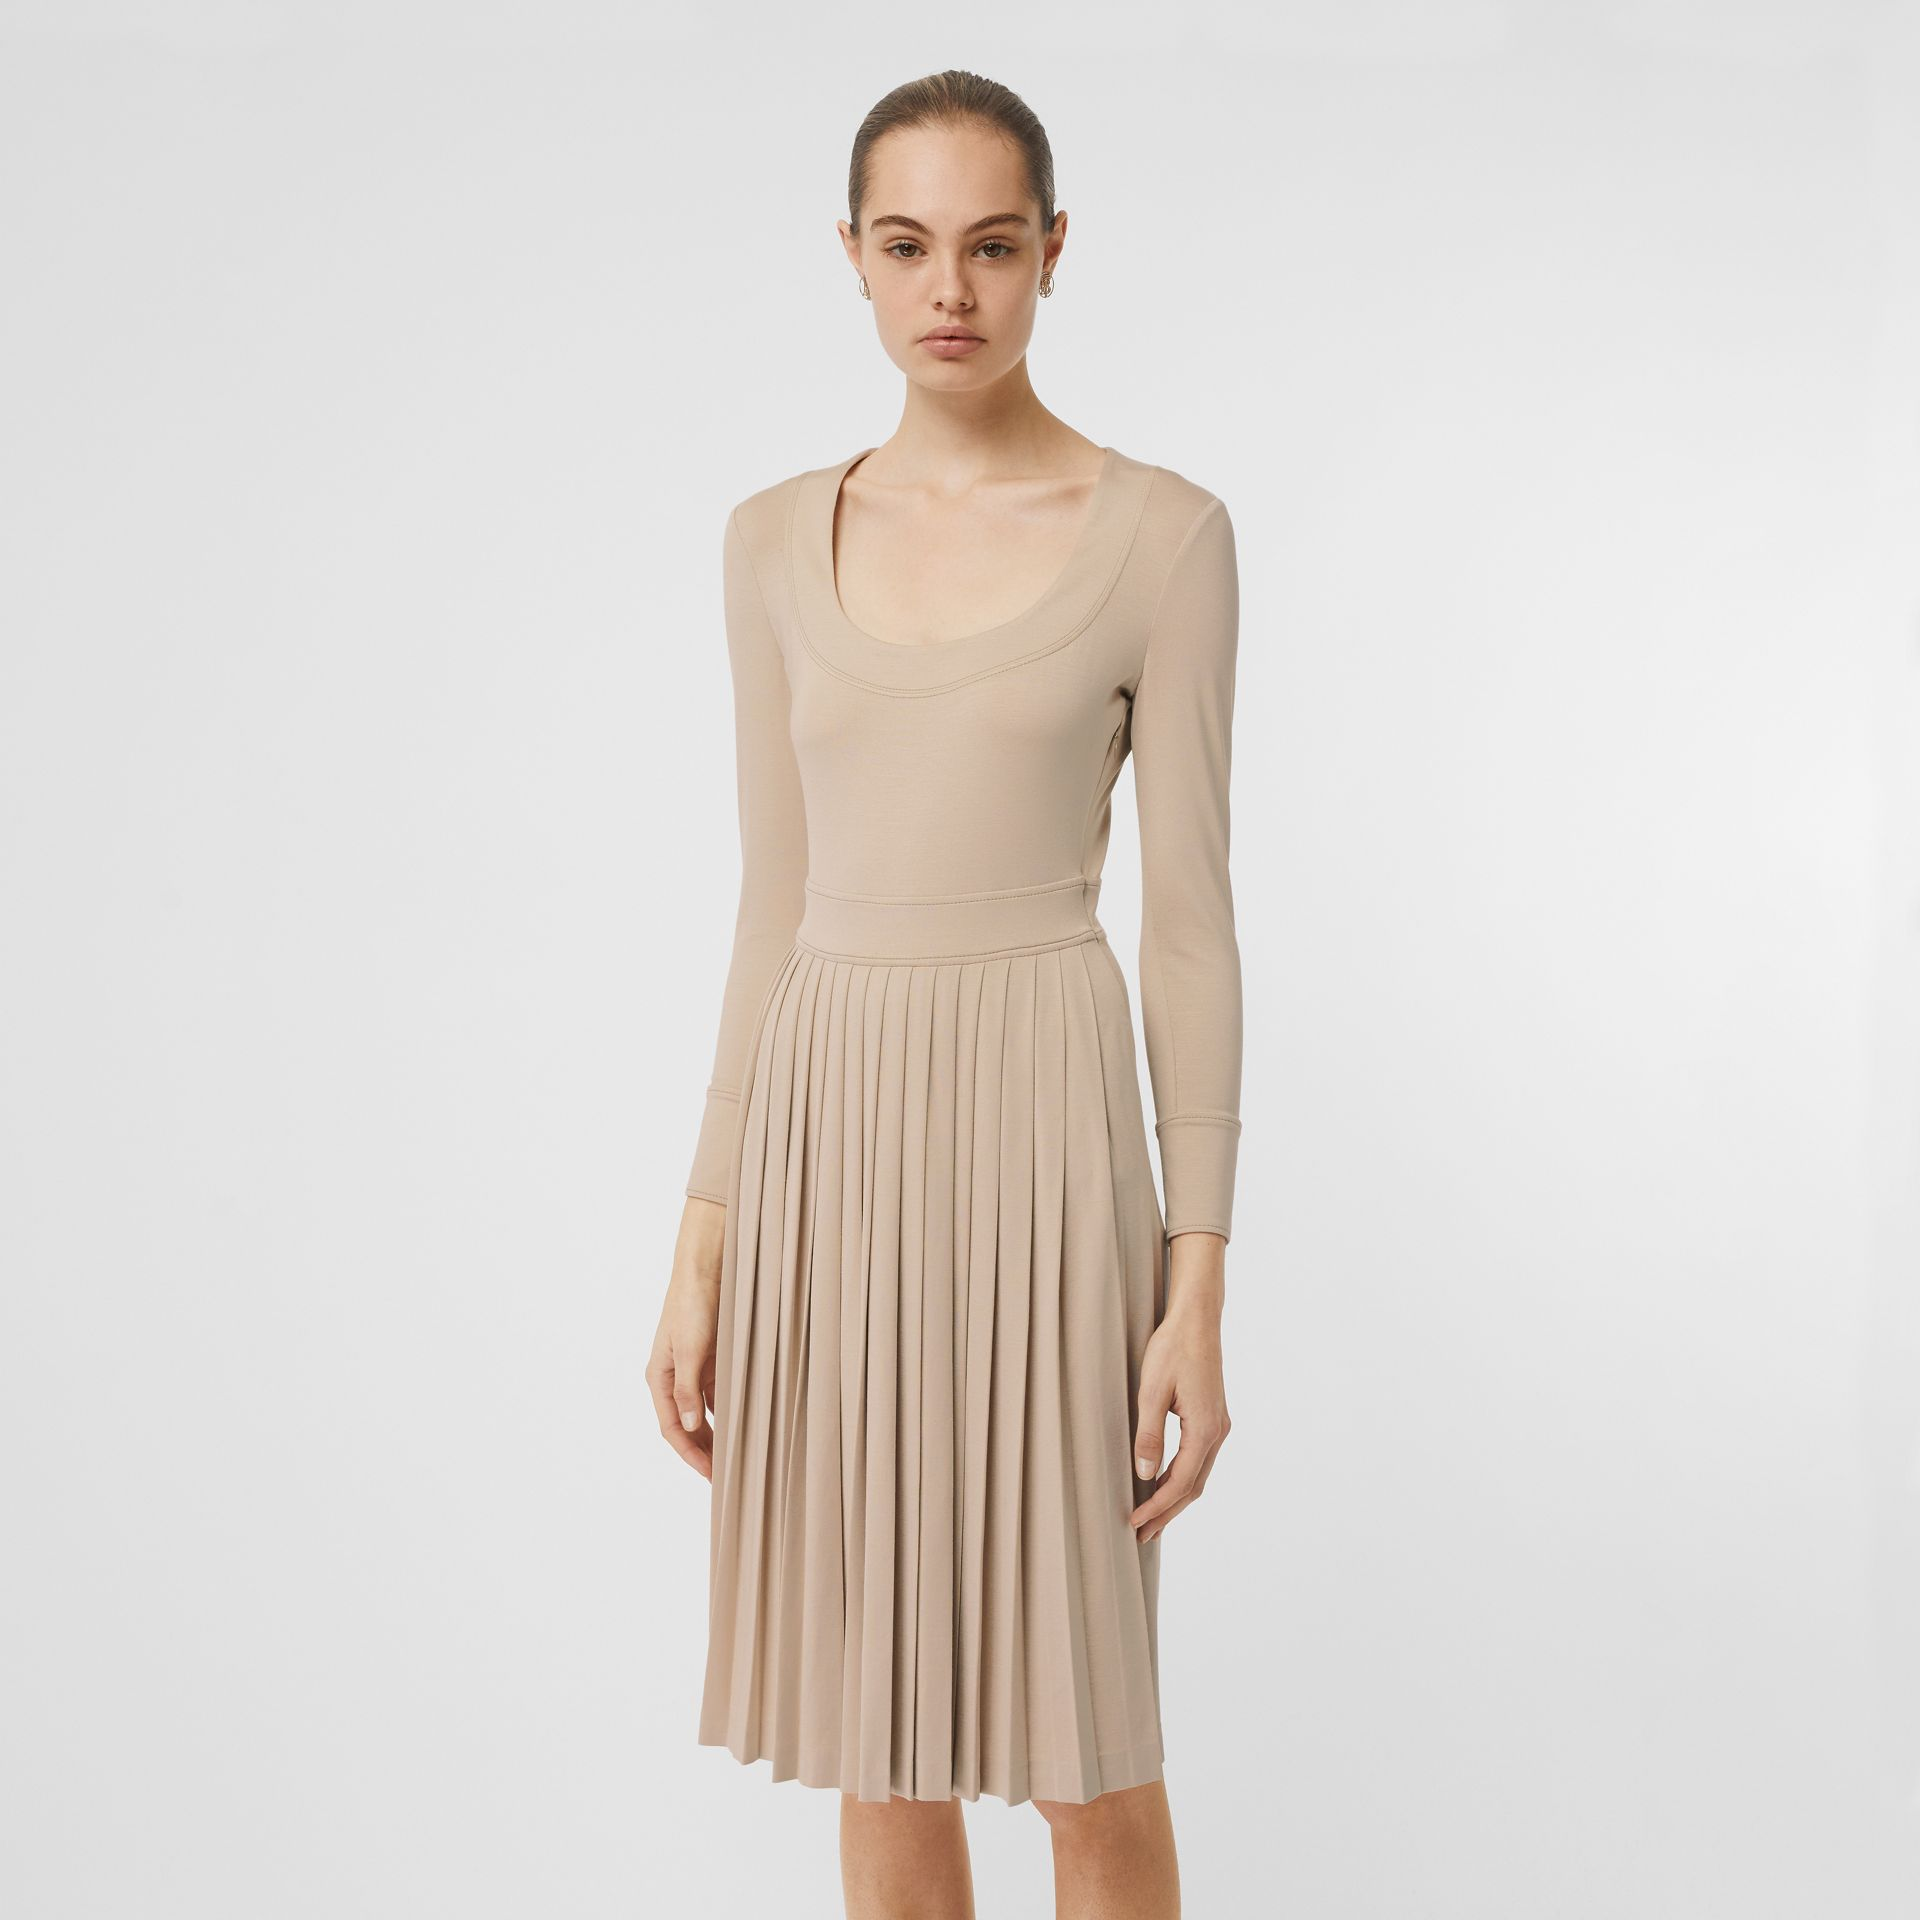 Long-sleeve Pleated Dress in Teddy Beige - Women | Burberry United States - gallery image 0